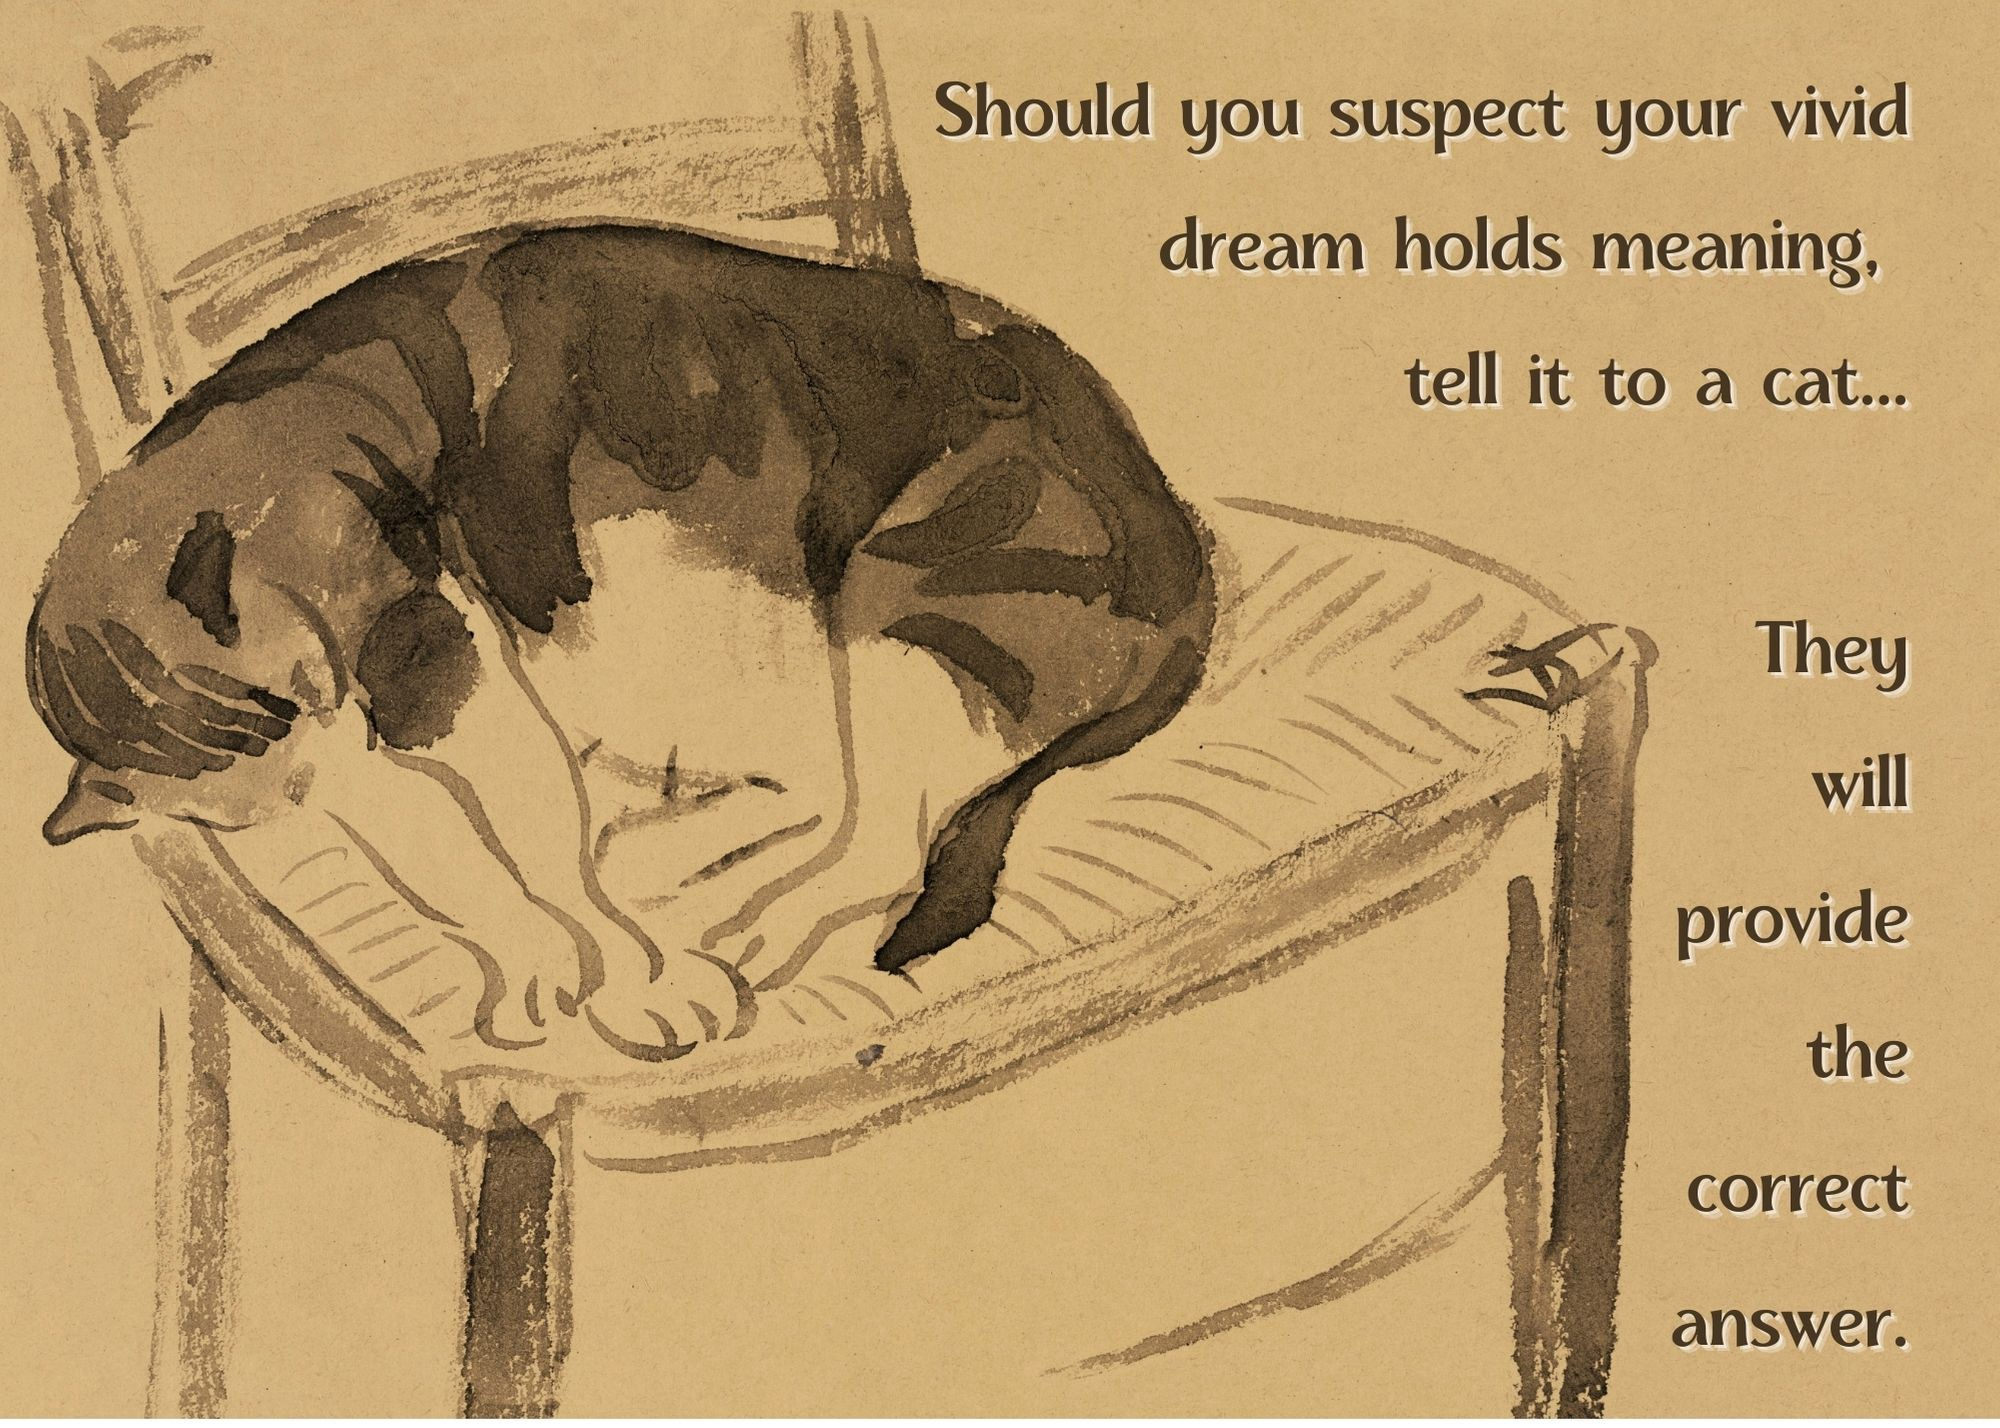 A beautiful ink sketch-type illustration of a cat in a chair with the aphorism below typed next to the cat.